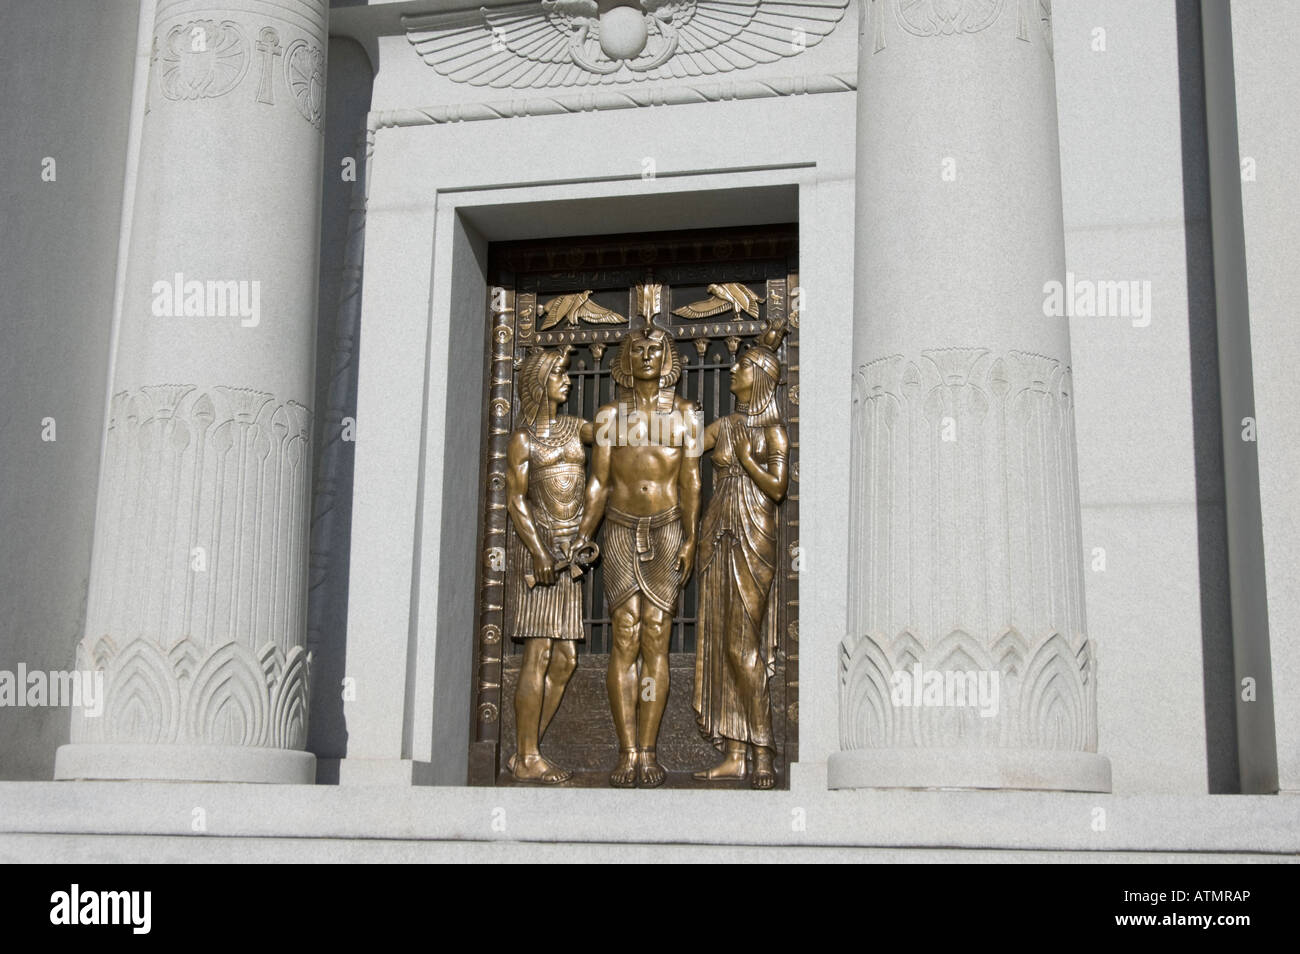 Ancient egyptian design in mausoleum building with bronze doors and columns. & Ancient egyptian design in mausoleum building with bronze doors ... Pezcame.Com